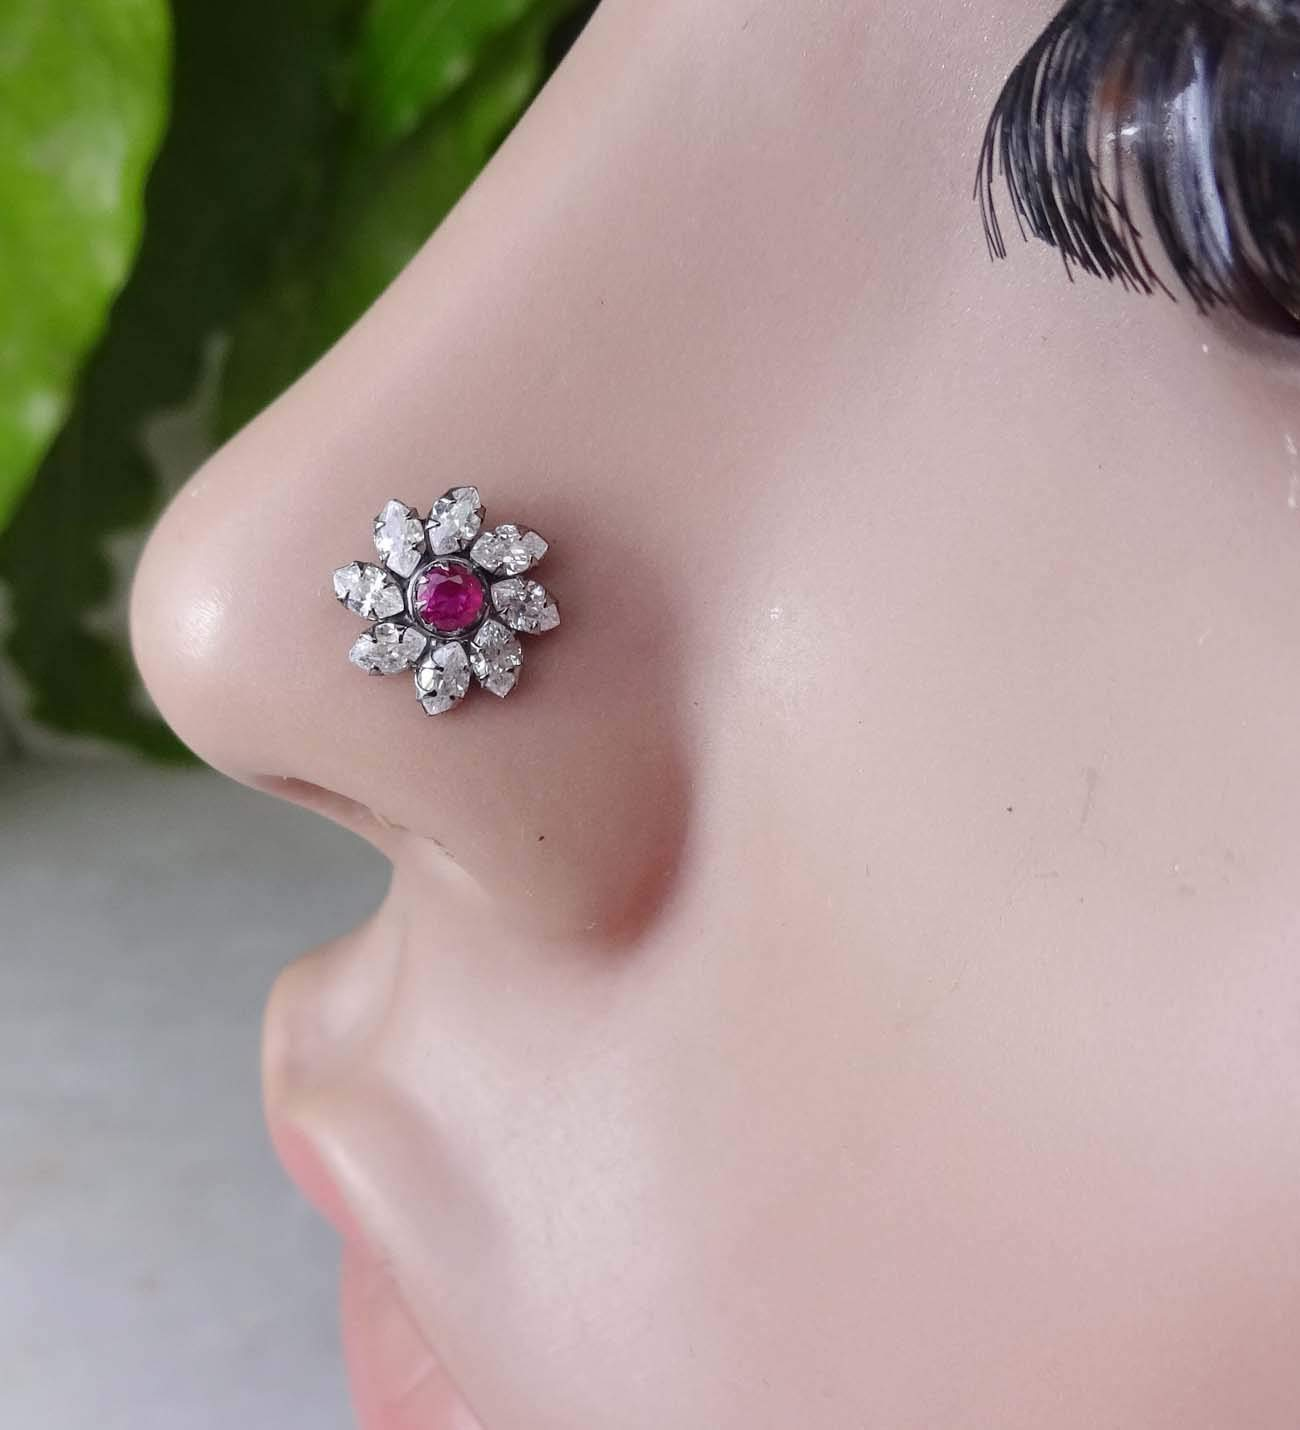 Indian Nose Stud Nose Jewelry Gift For Her White Gold Nose Stud L Shape Nose Stud Tribal Nose Stud Crystal Nose Stud Mother Day Special Gift